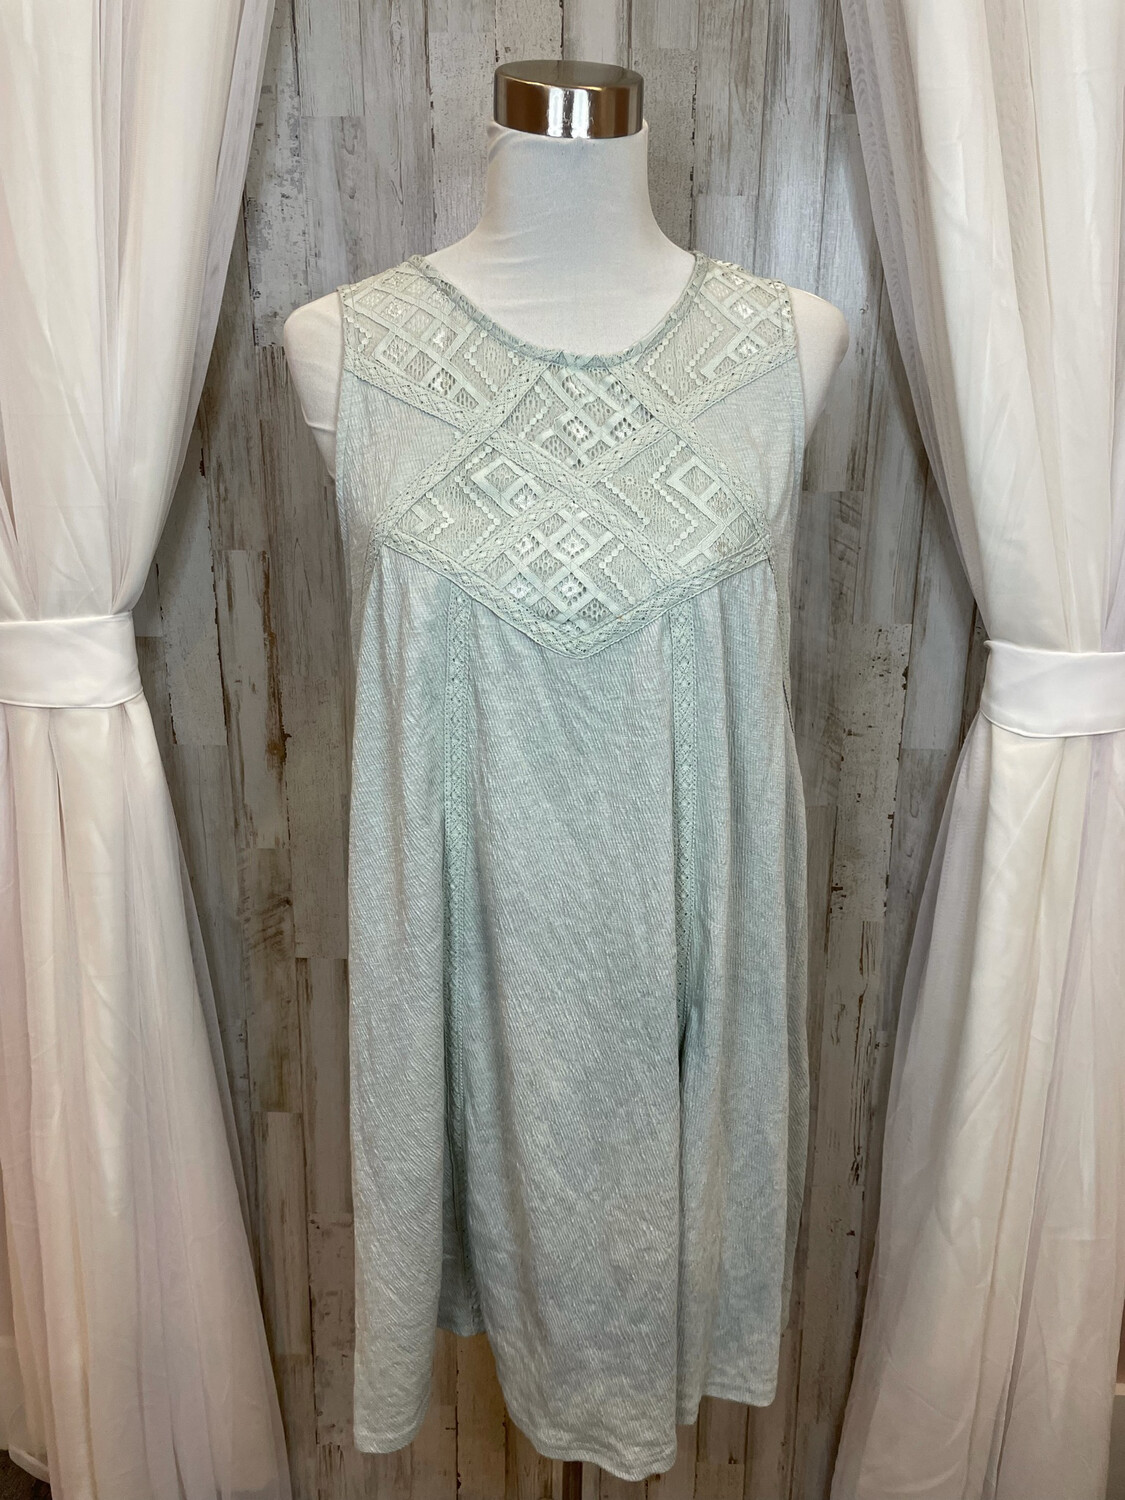 Before You Collection Mint Dress - M